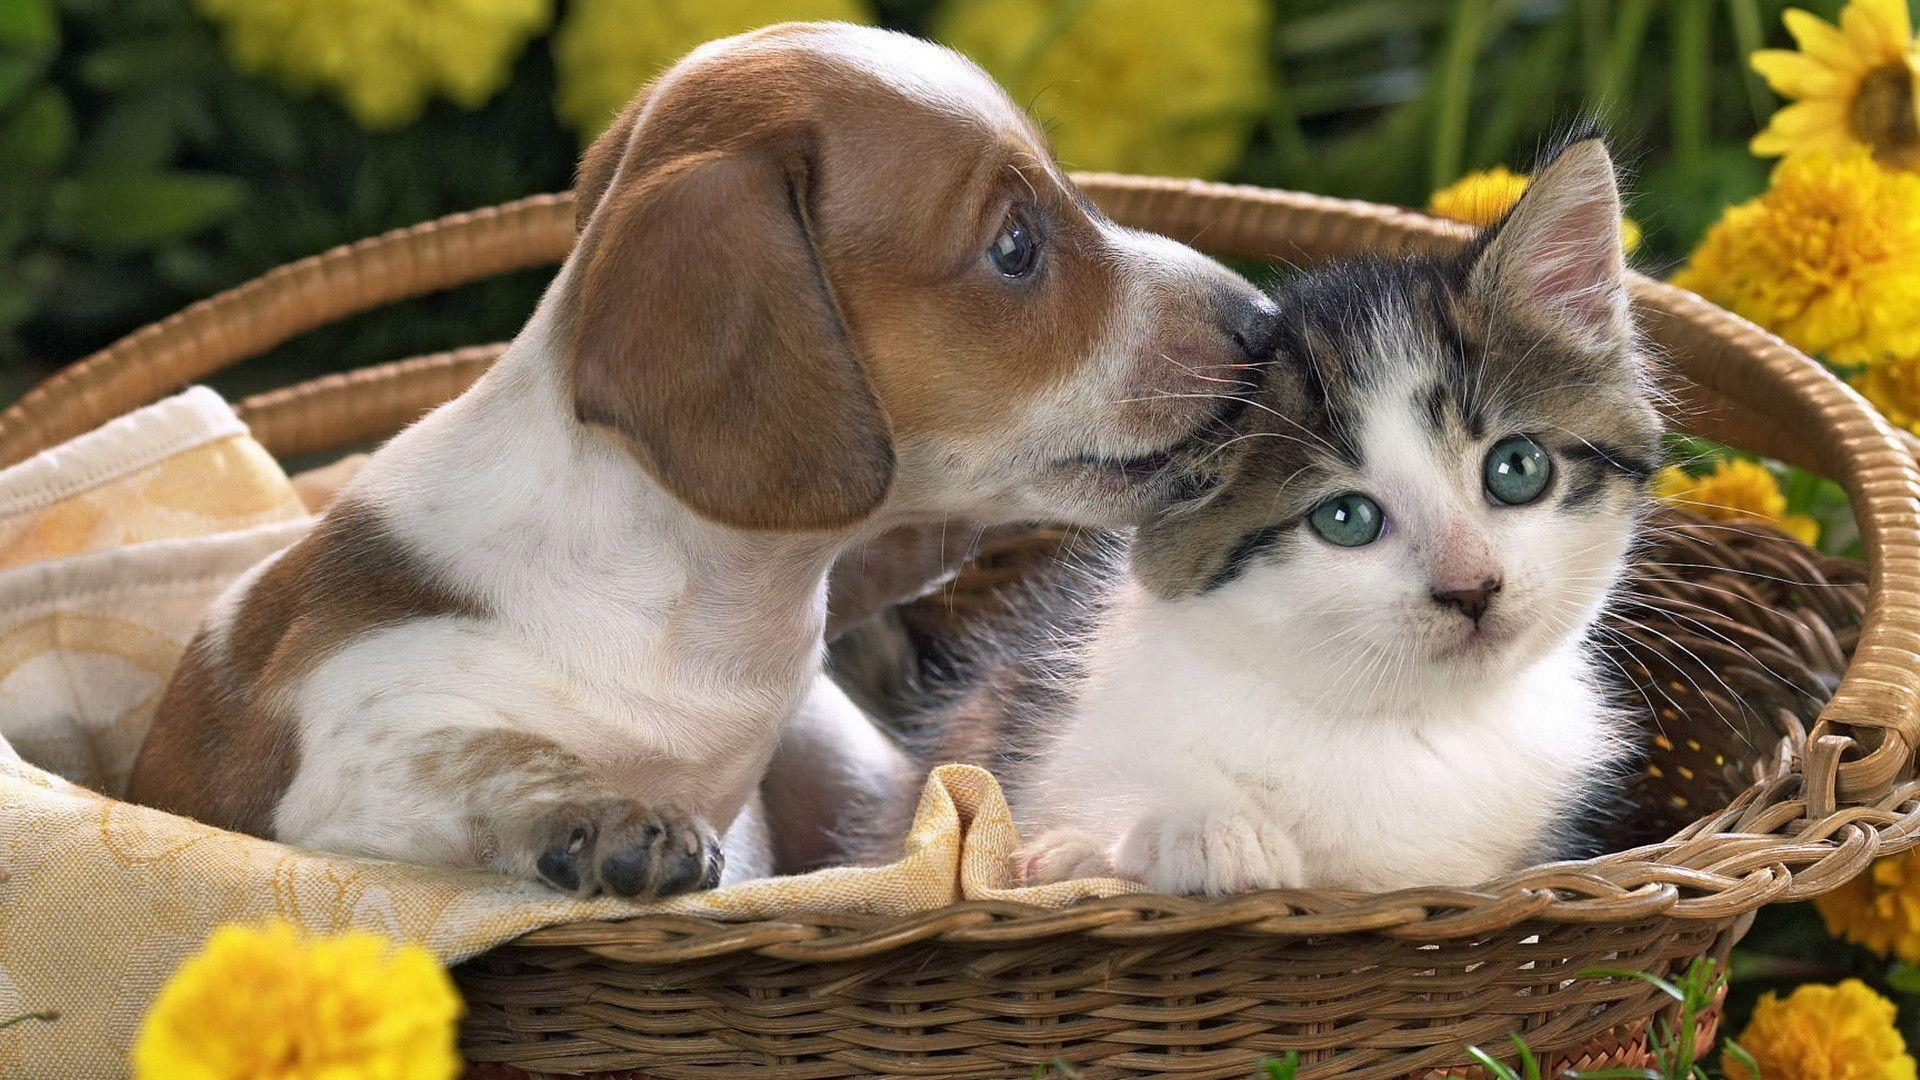 Cute Puppy And Kitten Wallpapers Image & Pictures